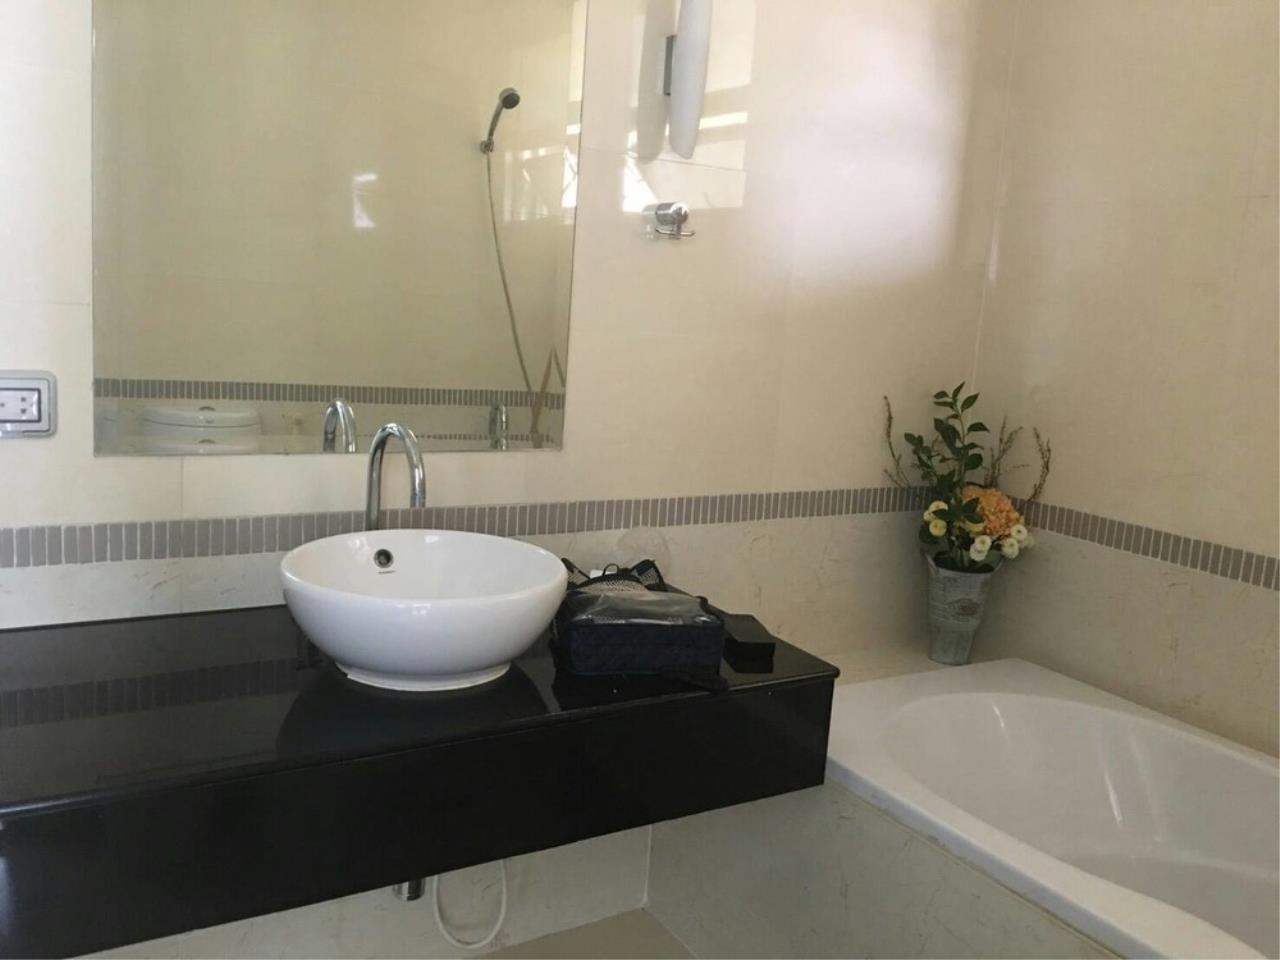 Agent - Thitiporn Sriboola Agency's Baan Klang Krung Siam-Pathumwan, High rise condo for rent, near  Ratchathewi 260 m / 4 minutes by foot 5